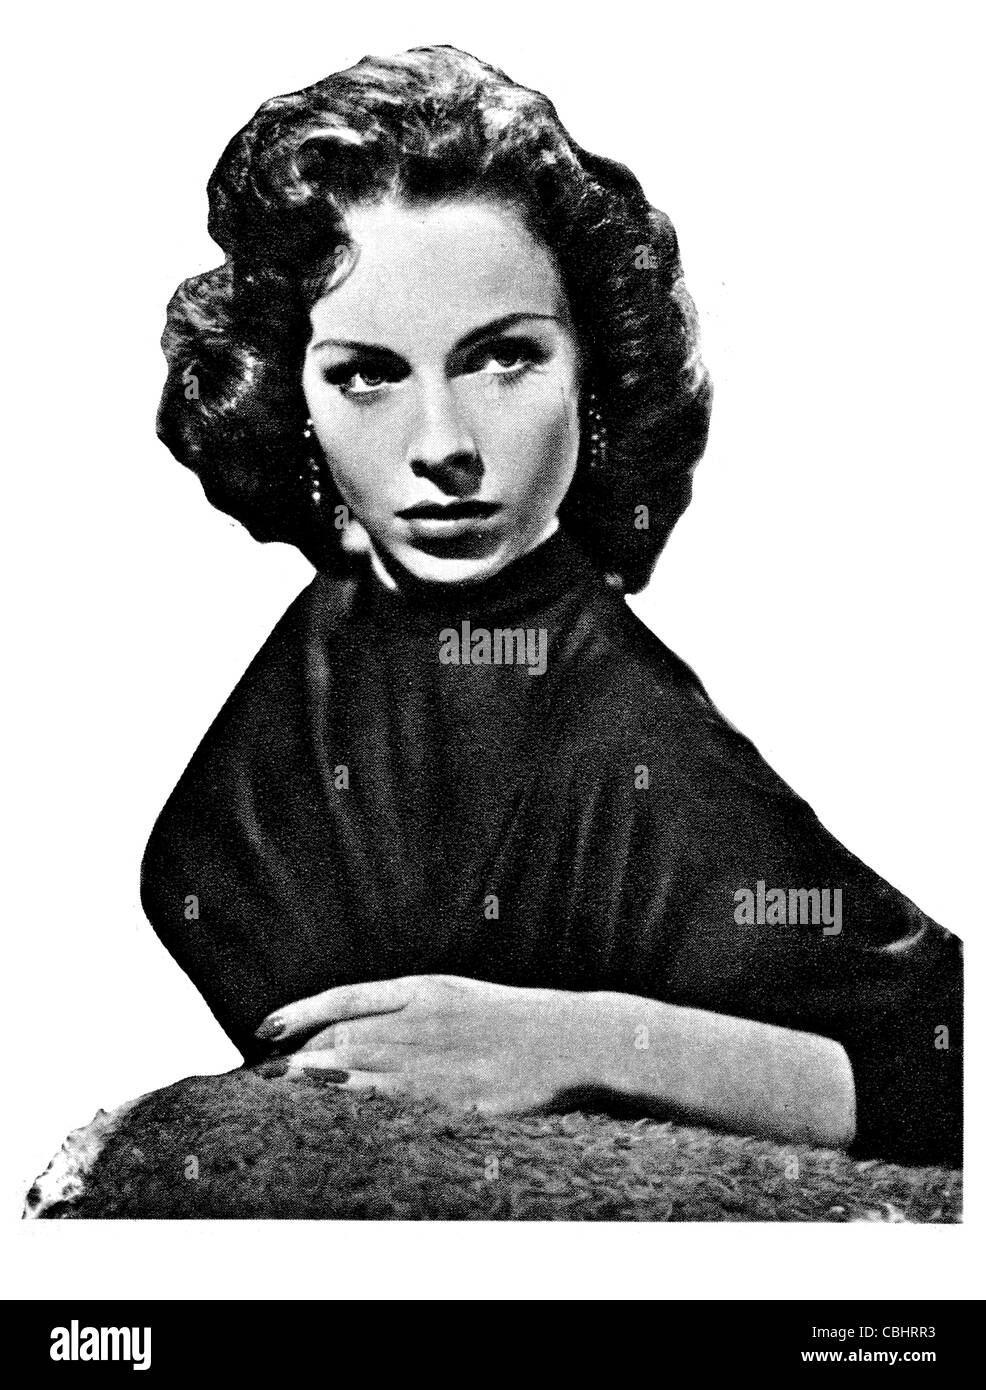 Mara Lane British Austrian actress Film Annual 1945 1955 cinemascope cinema filming movie movies fame celebrity - Stock Image